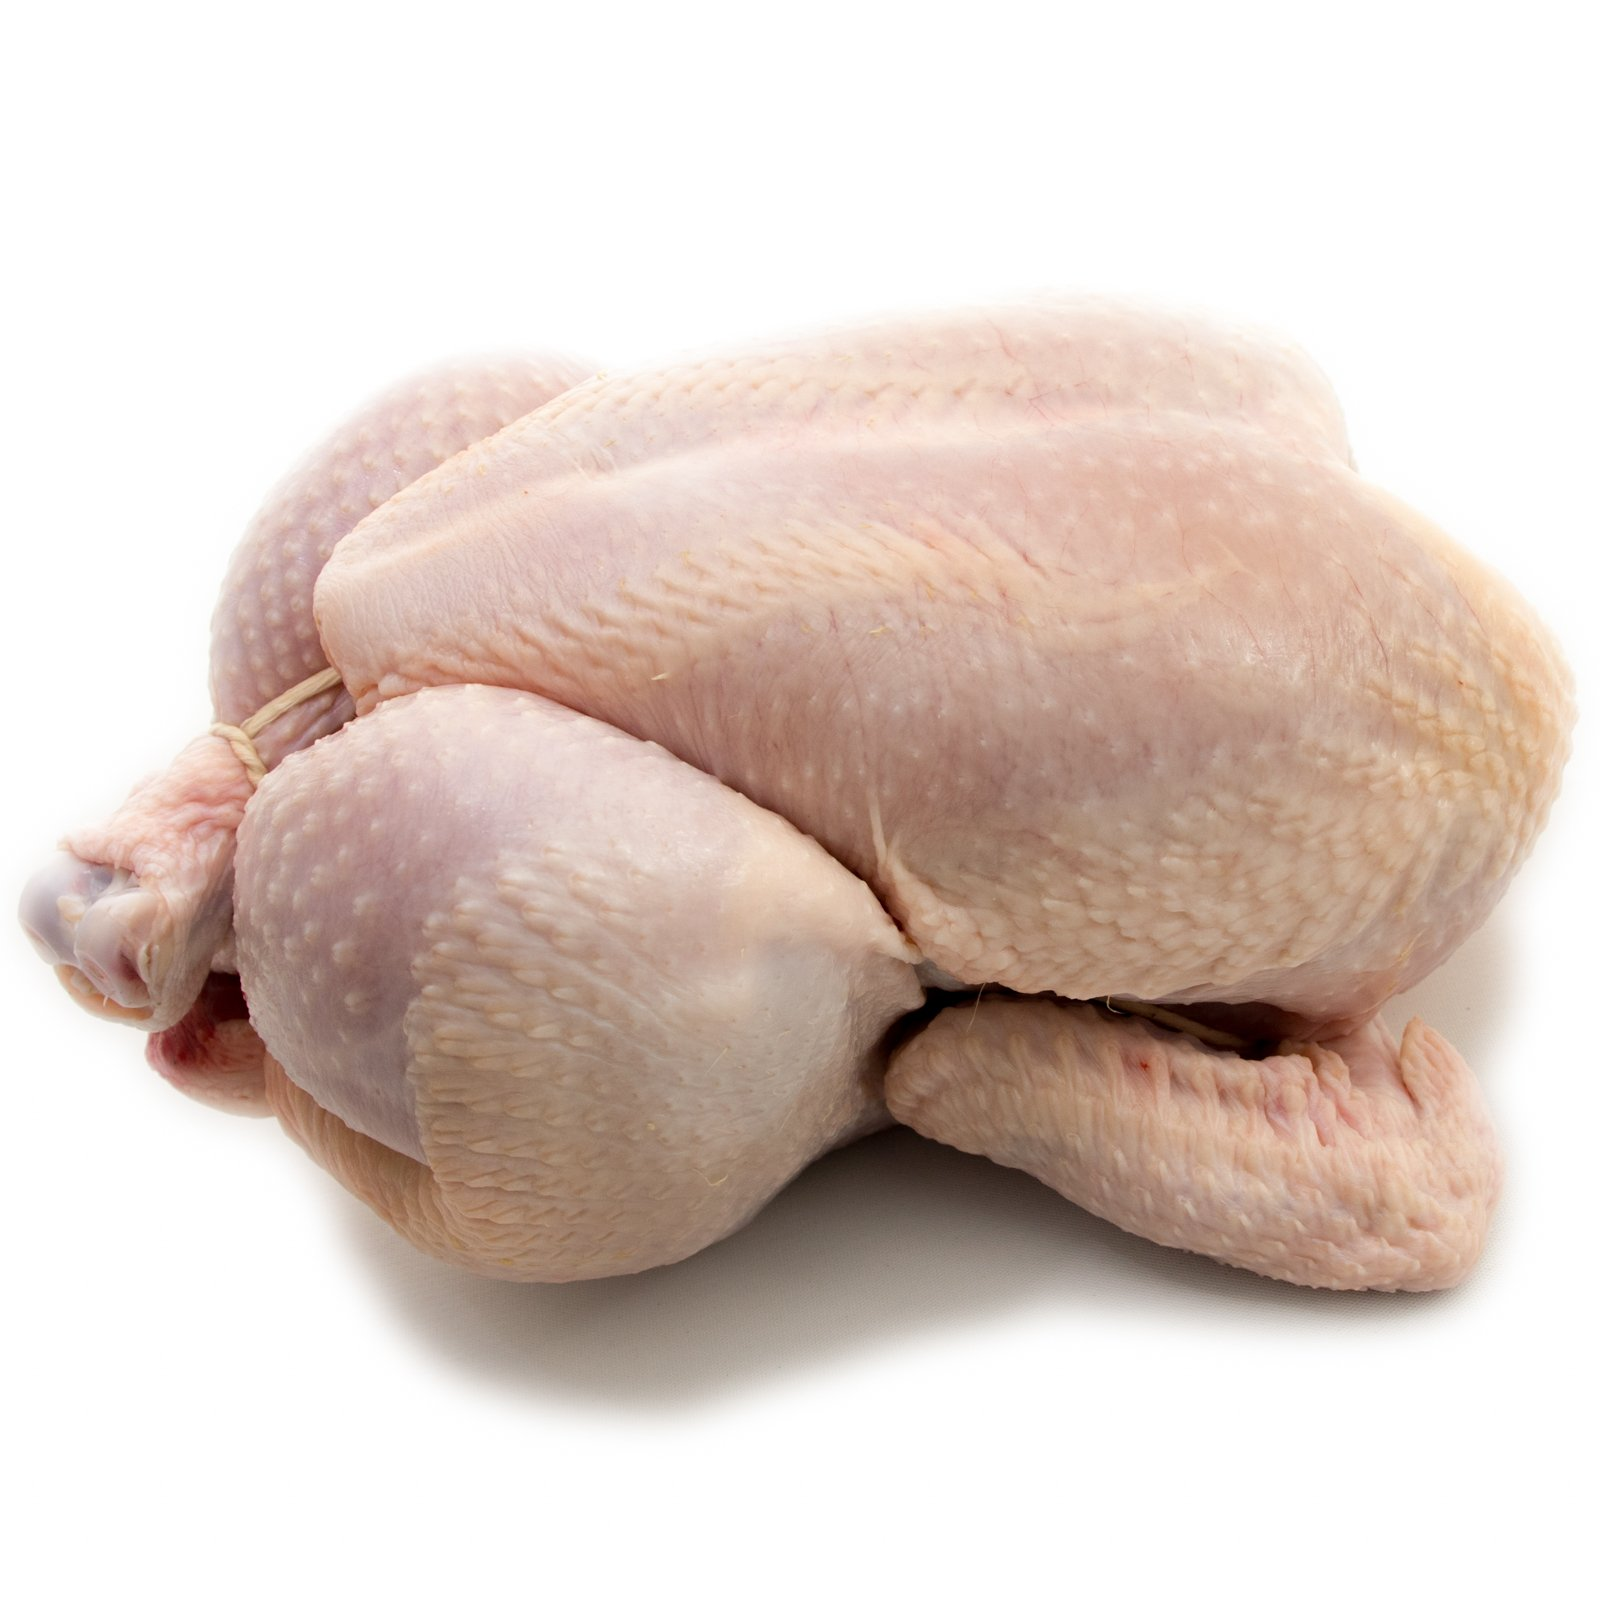 Organic Chicken 3lb by PastaCheese